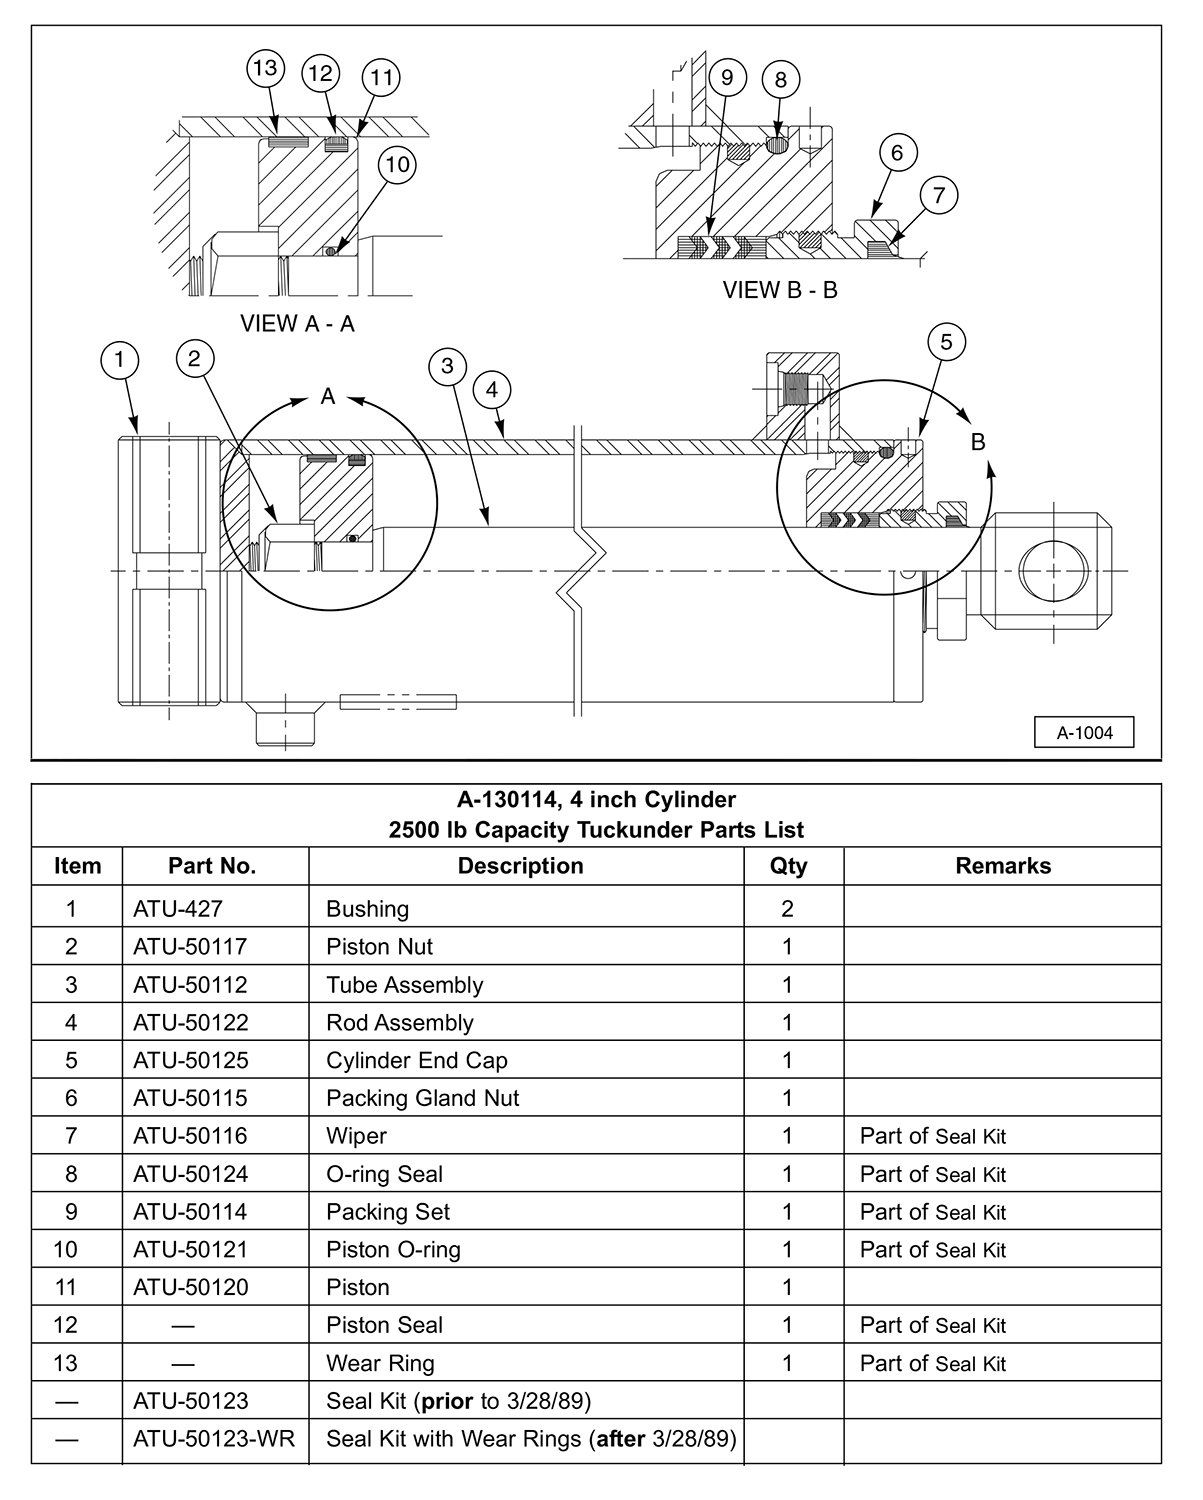 SM Hydraulic Cylinder Service Parts Diagram (For 2500 lb Capacity Liftgates)